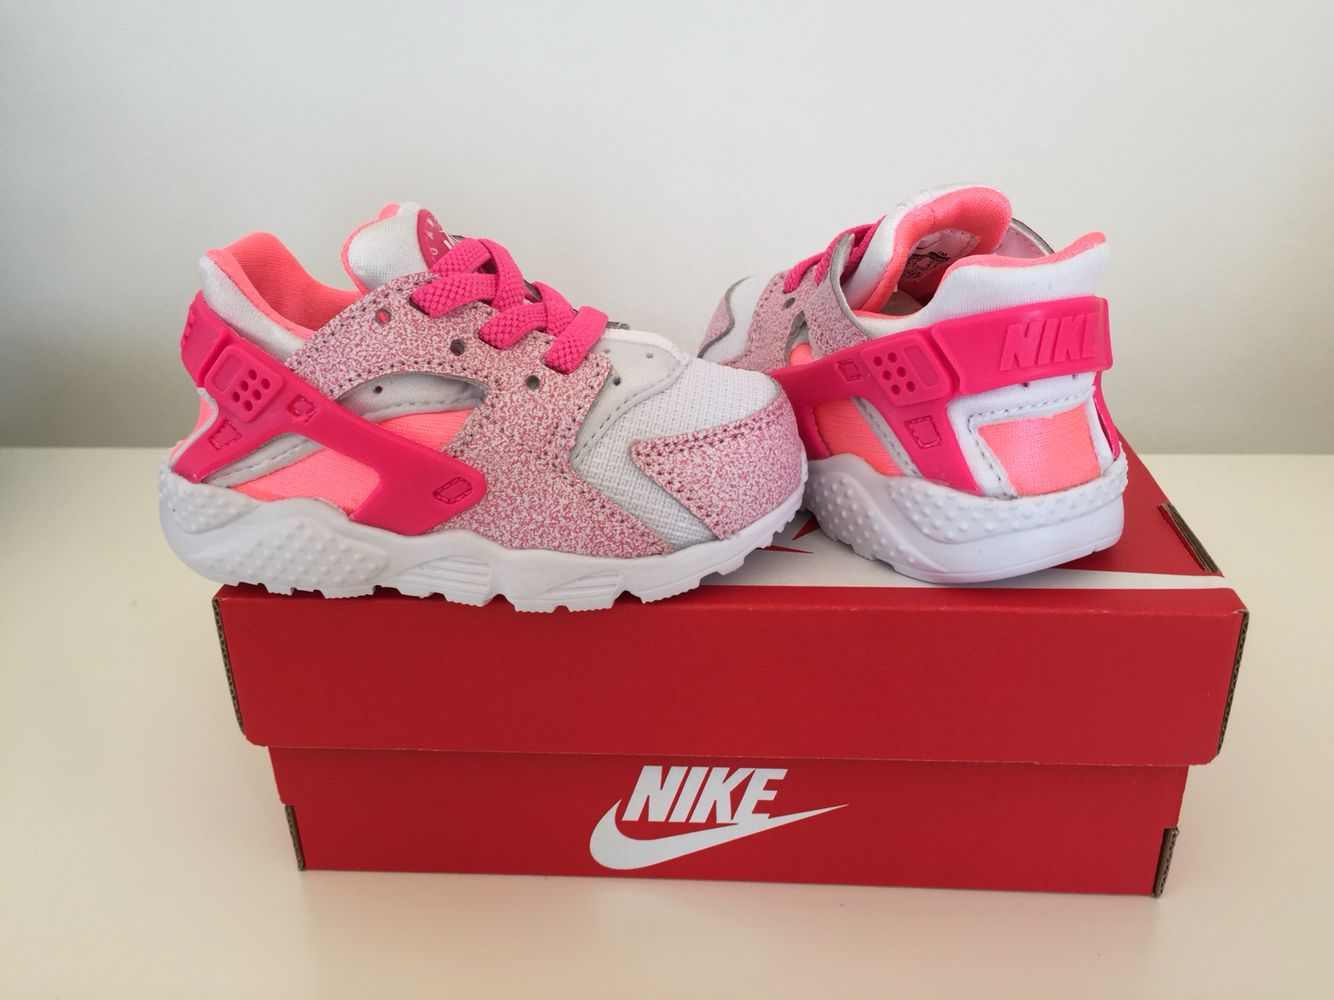 8f08452d7d Huarache kids | Baby Girl Fashion. | Baby girl fashion, Baby Shoes ...